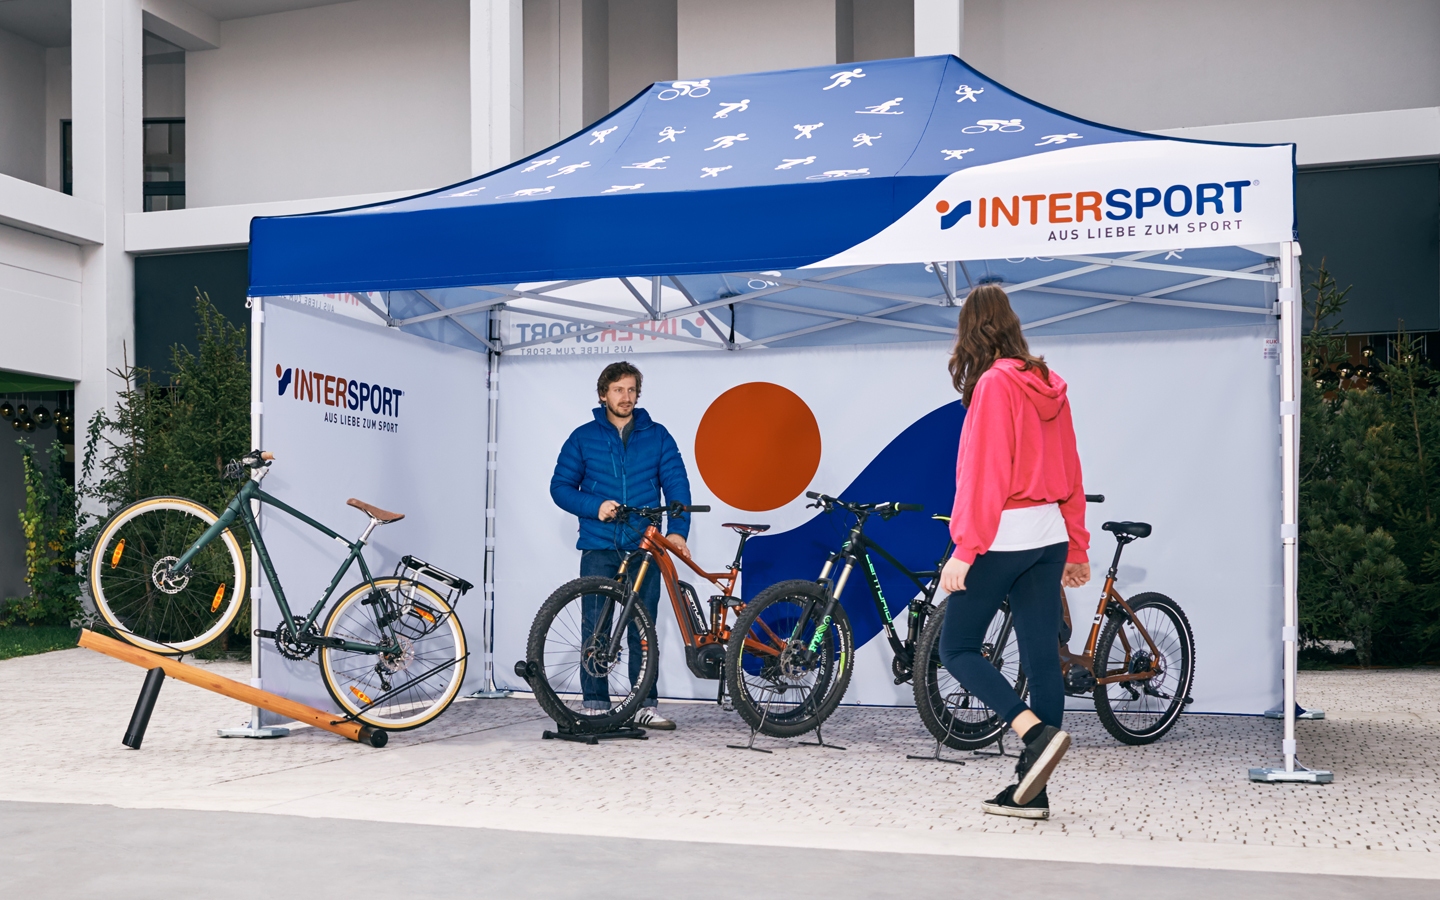 Both the roof and the three closed side walls of the canopy tent are printed in the colors and with the logo of Intersport. The salesman presents various bicycles as well as mountain bikes under his personalised Intersport sales stand.